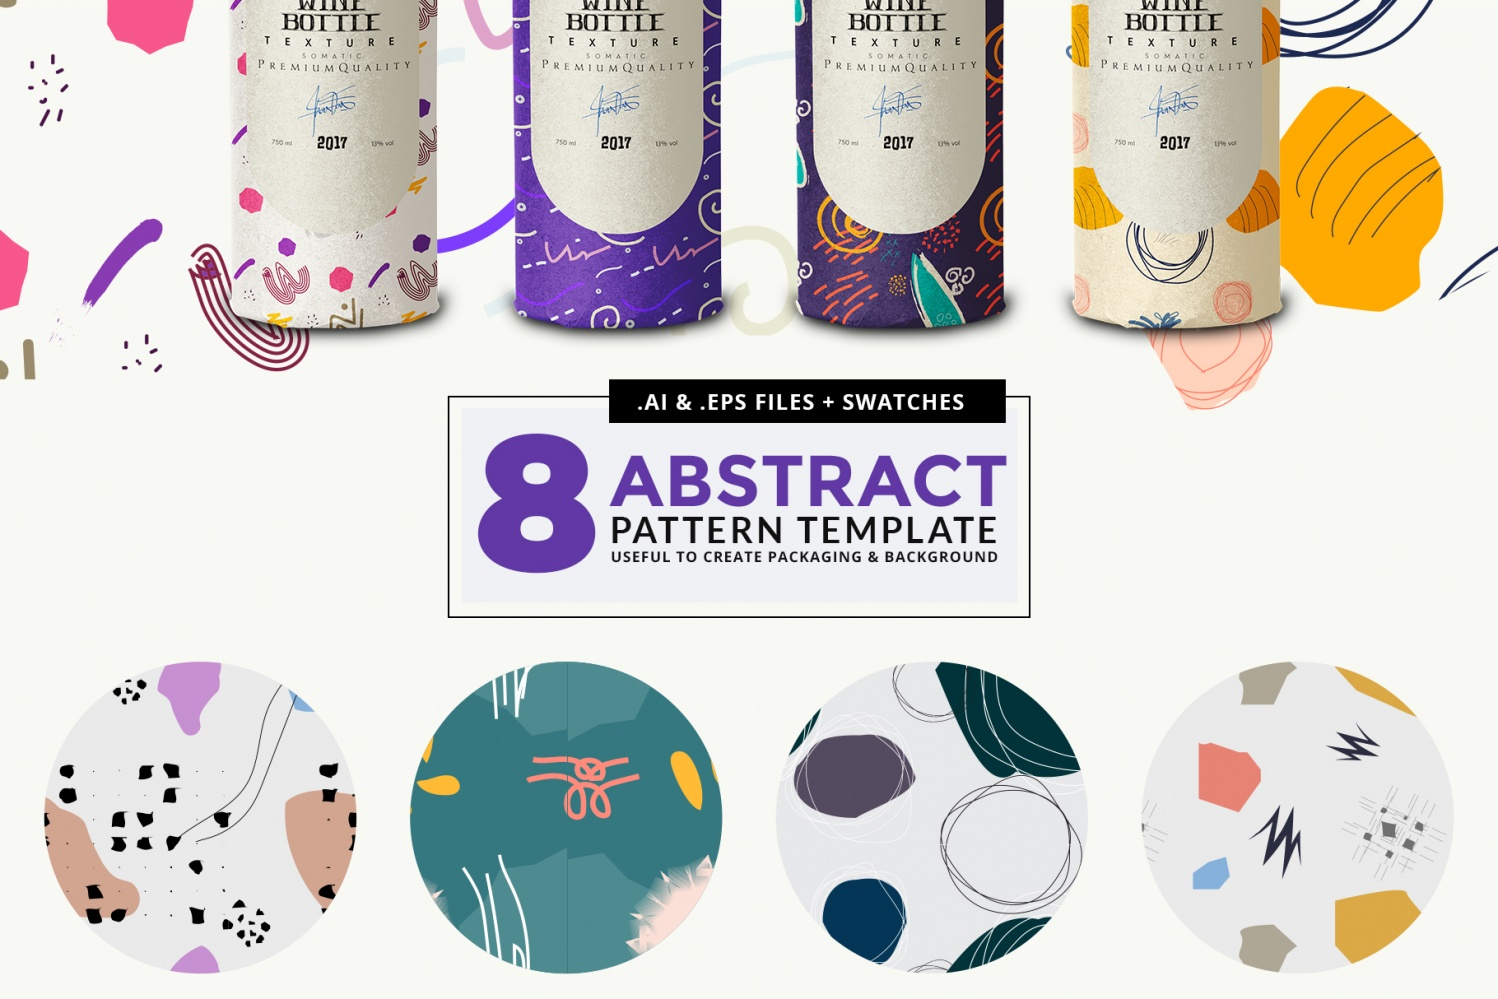 8 abstract vector pattern presentation preview image